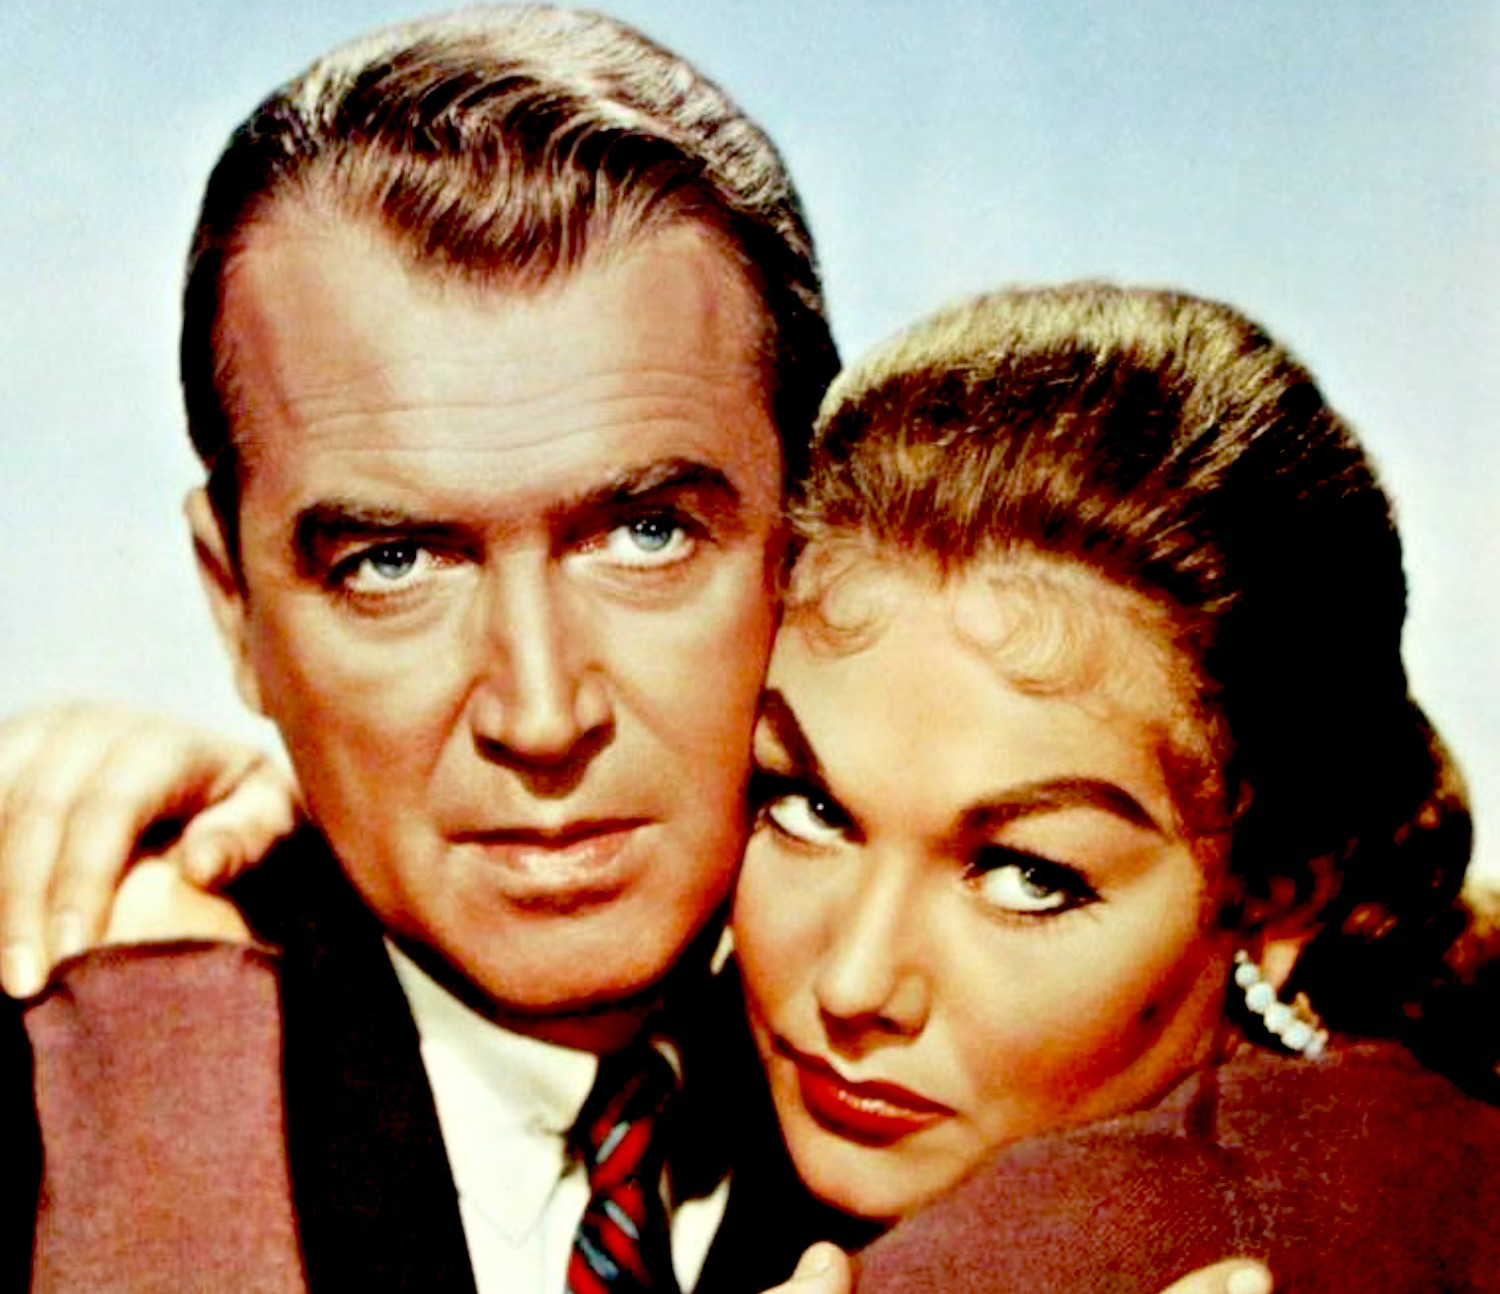 James Stewart and Kim Novak in Vertigo (1958)